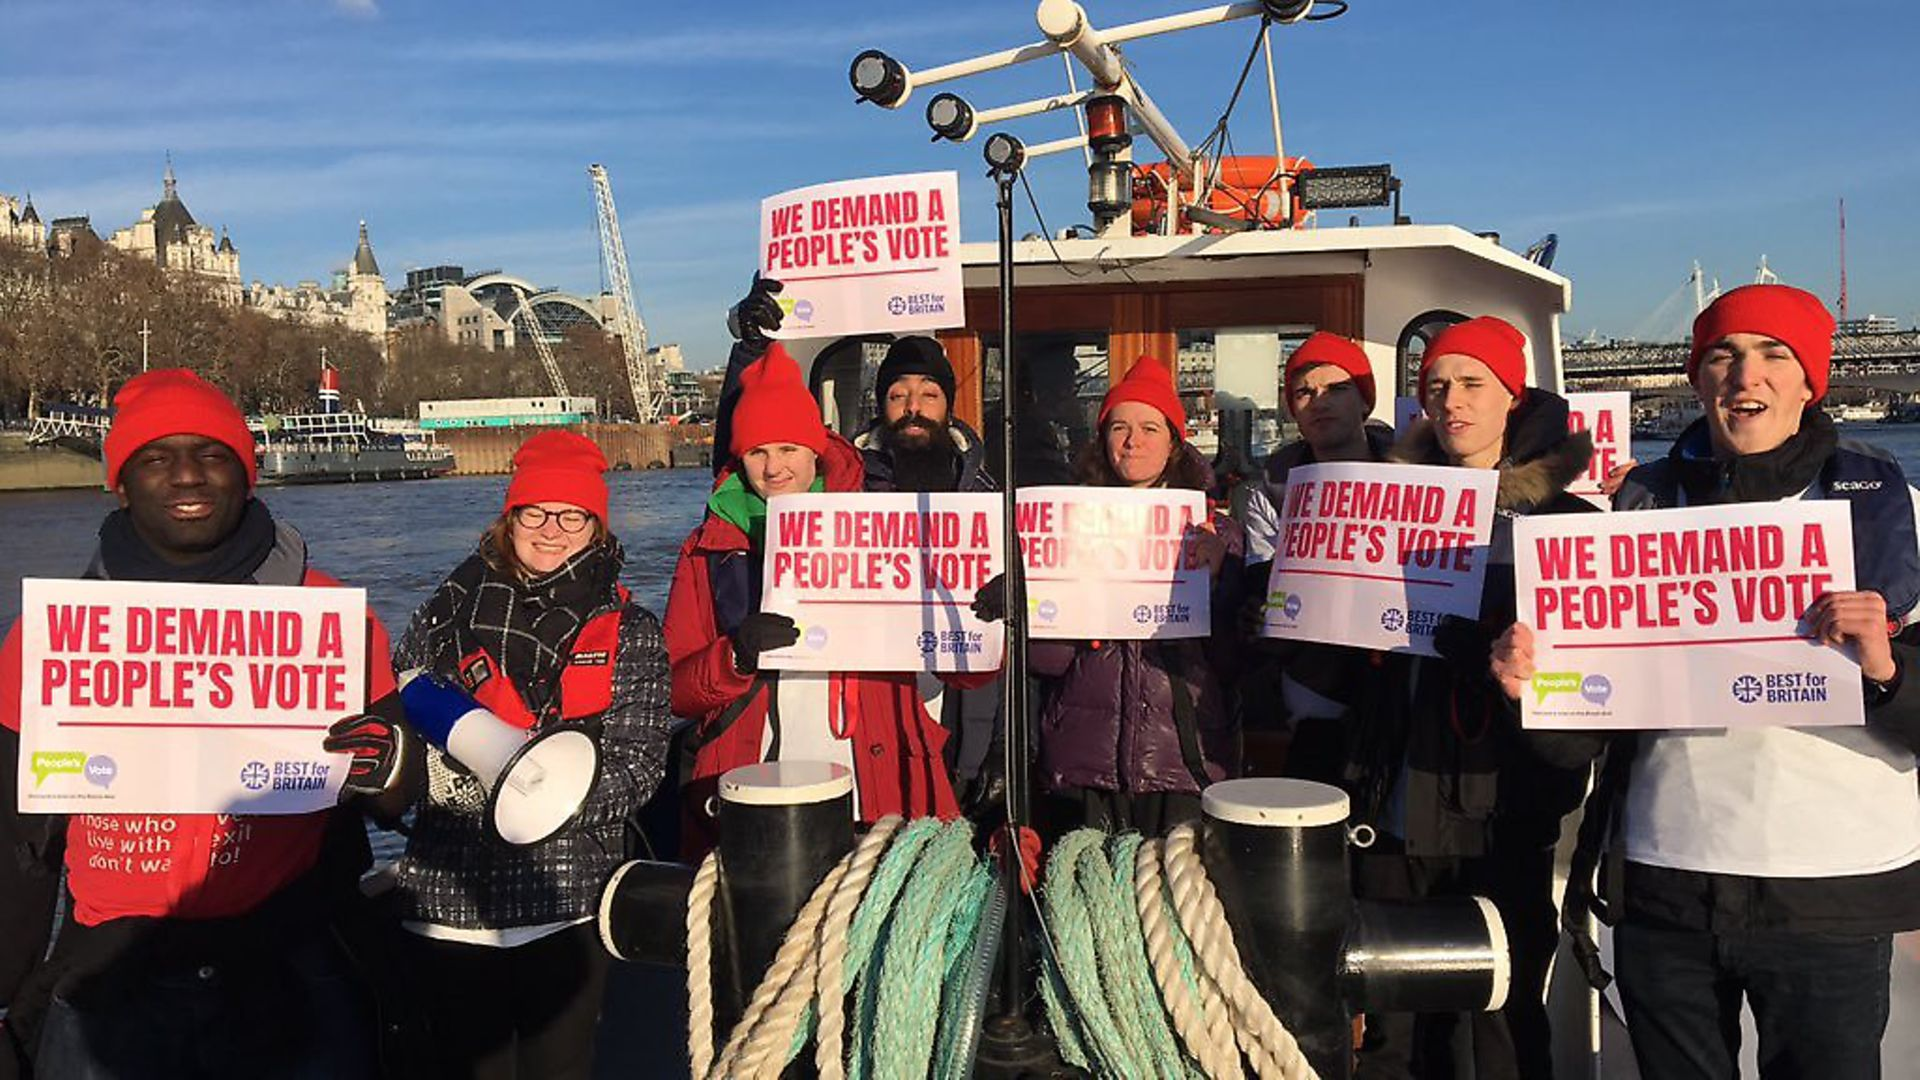 People's Vote campaigners on a people's boat. Photograph: Our Future Our Choice. - Credit: Archant